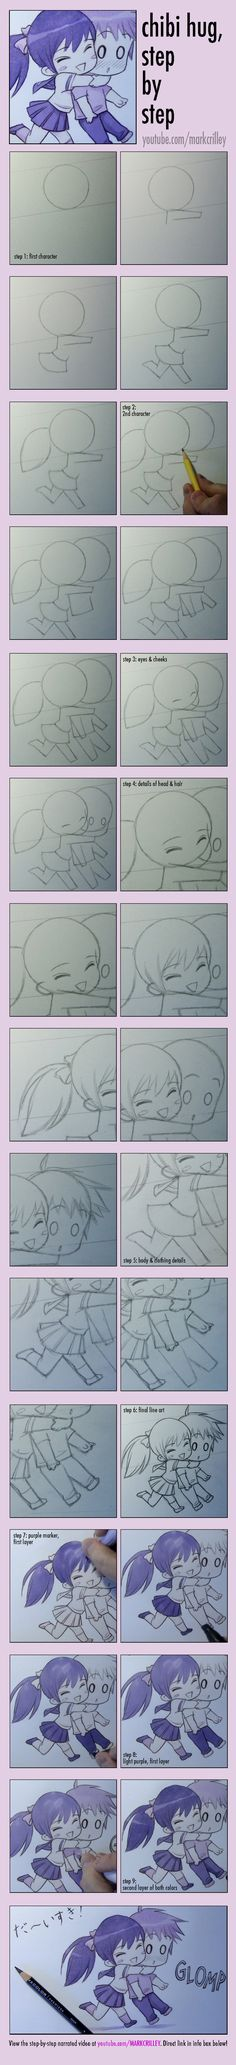 Chibi Hug, Step by Step by *markcrilley on deviantART